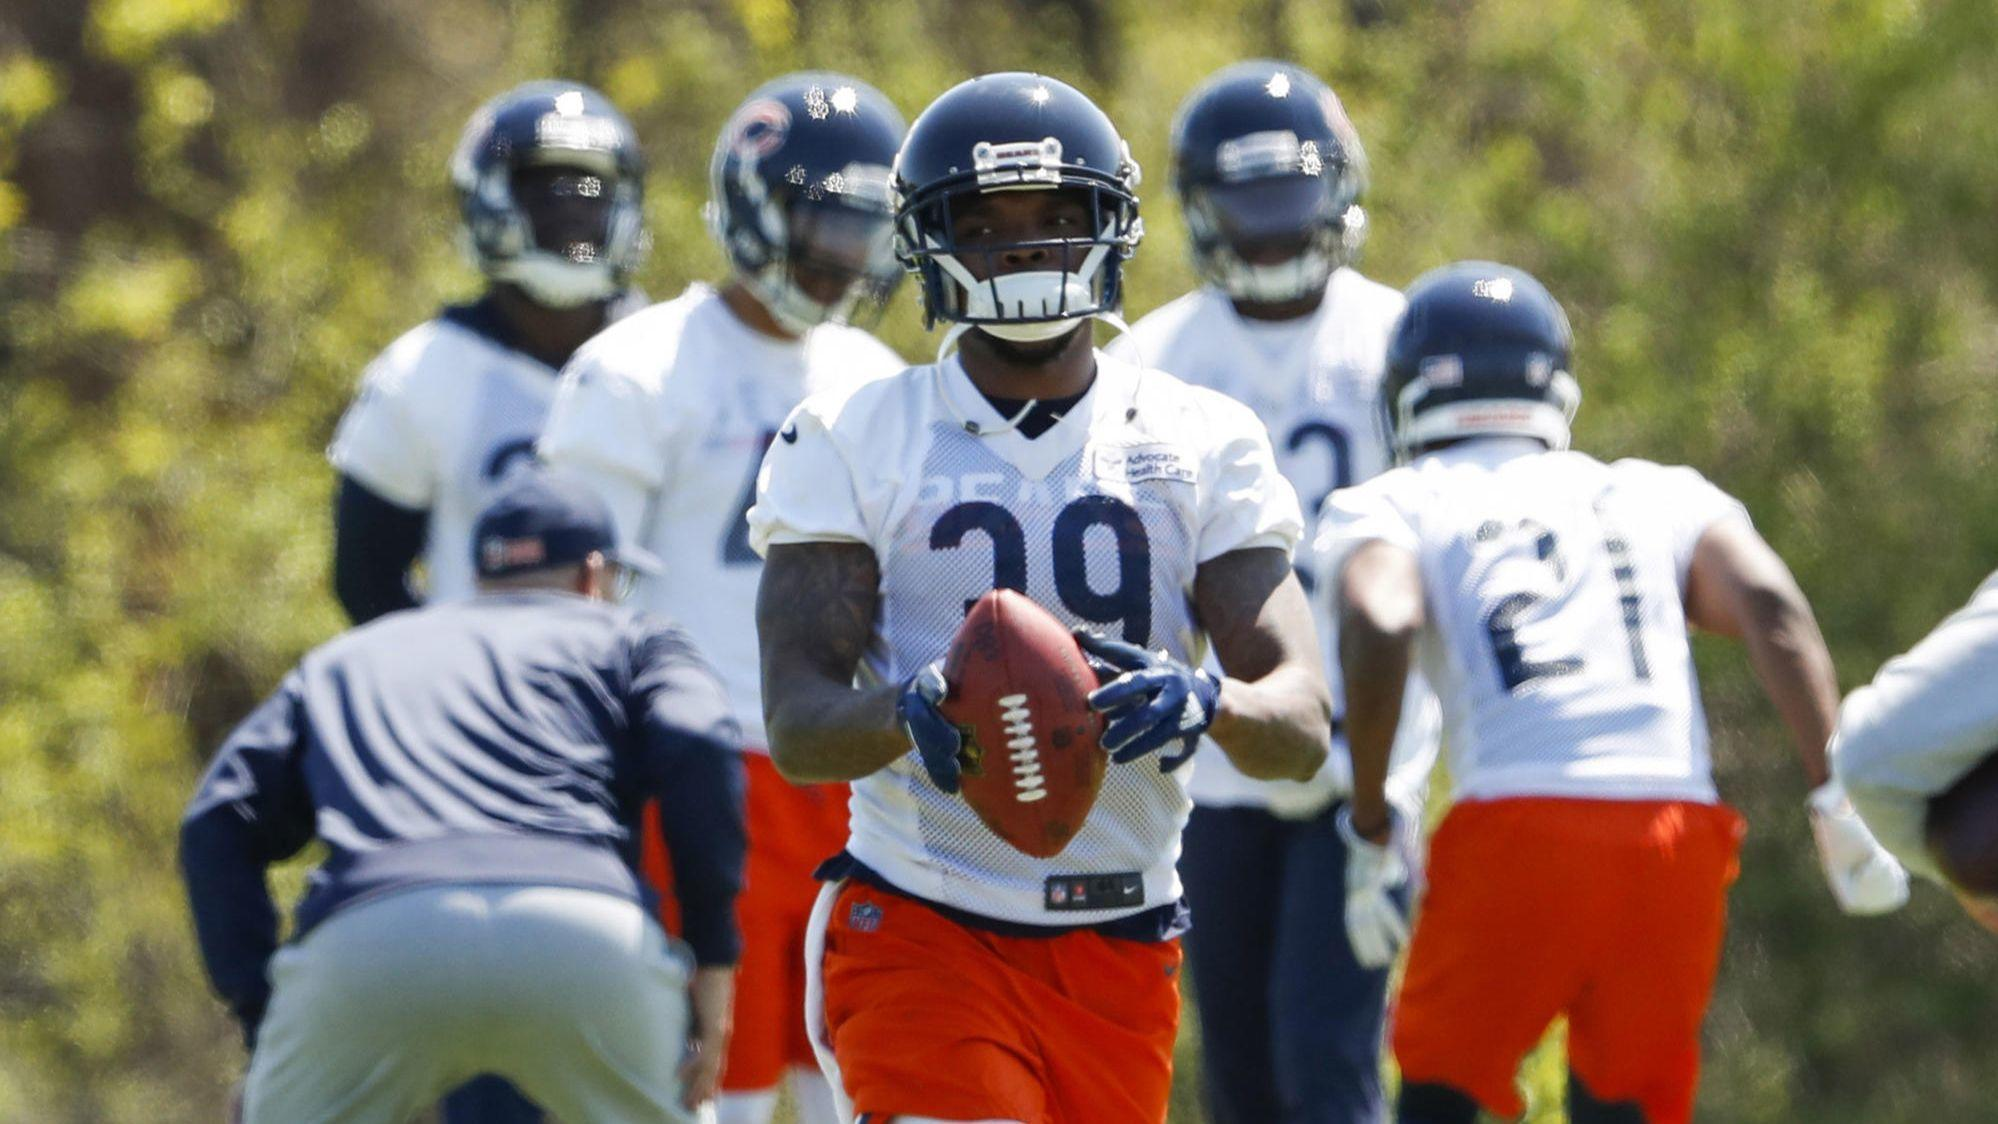 Ct-spt-bears-practice-observations-20180804